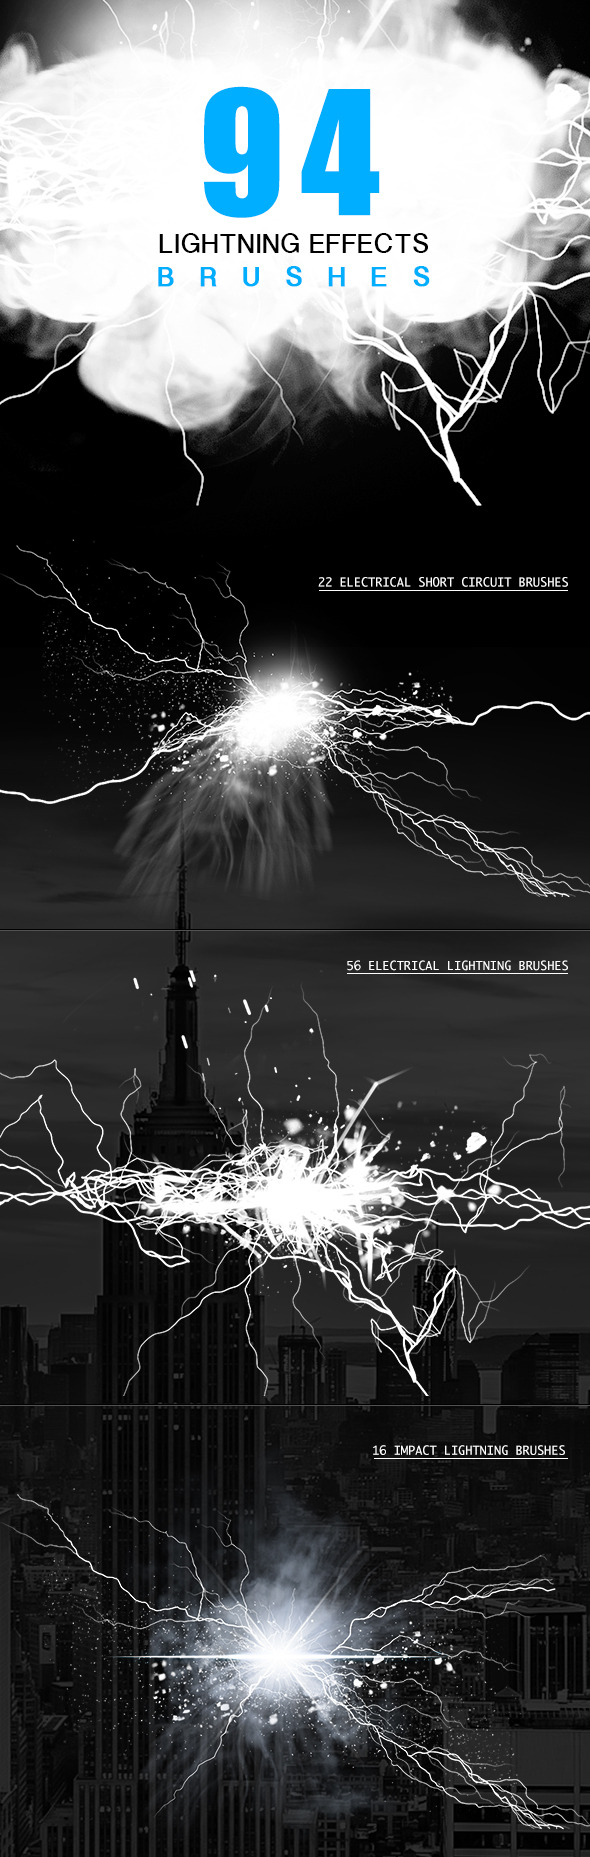 Electrical Lightning Brushes - Brushes Photoshop